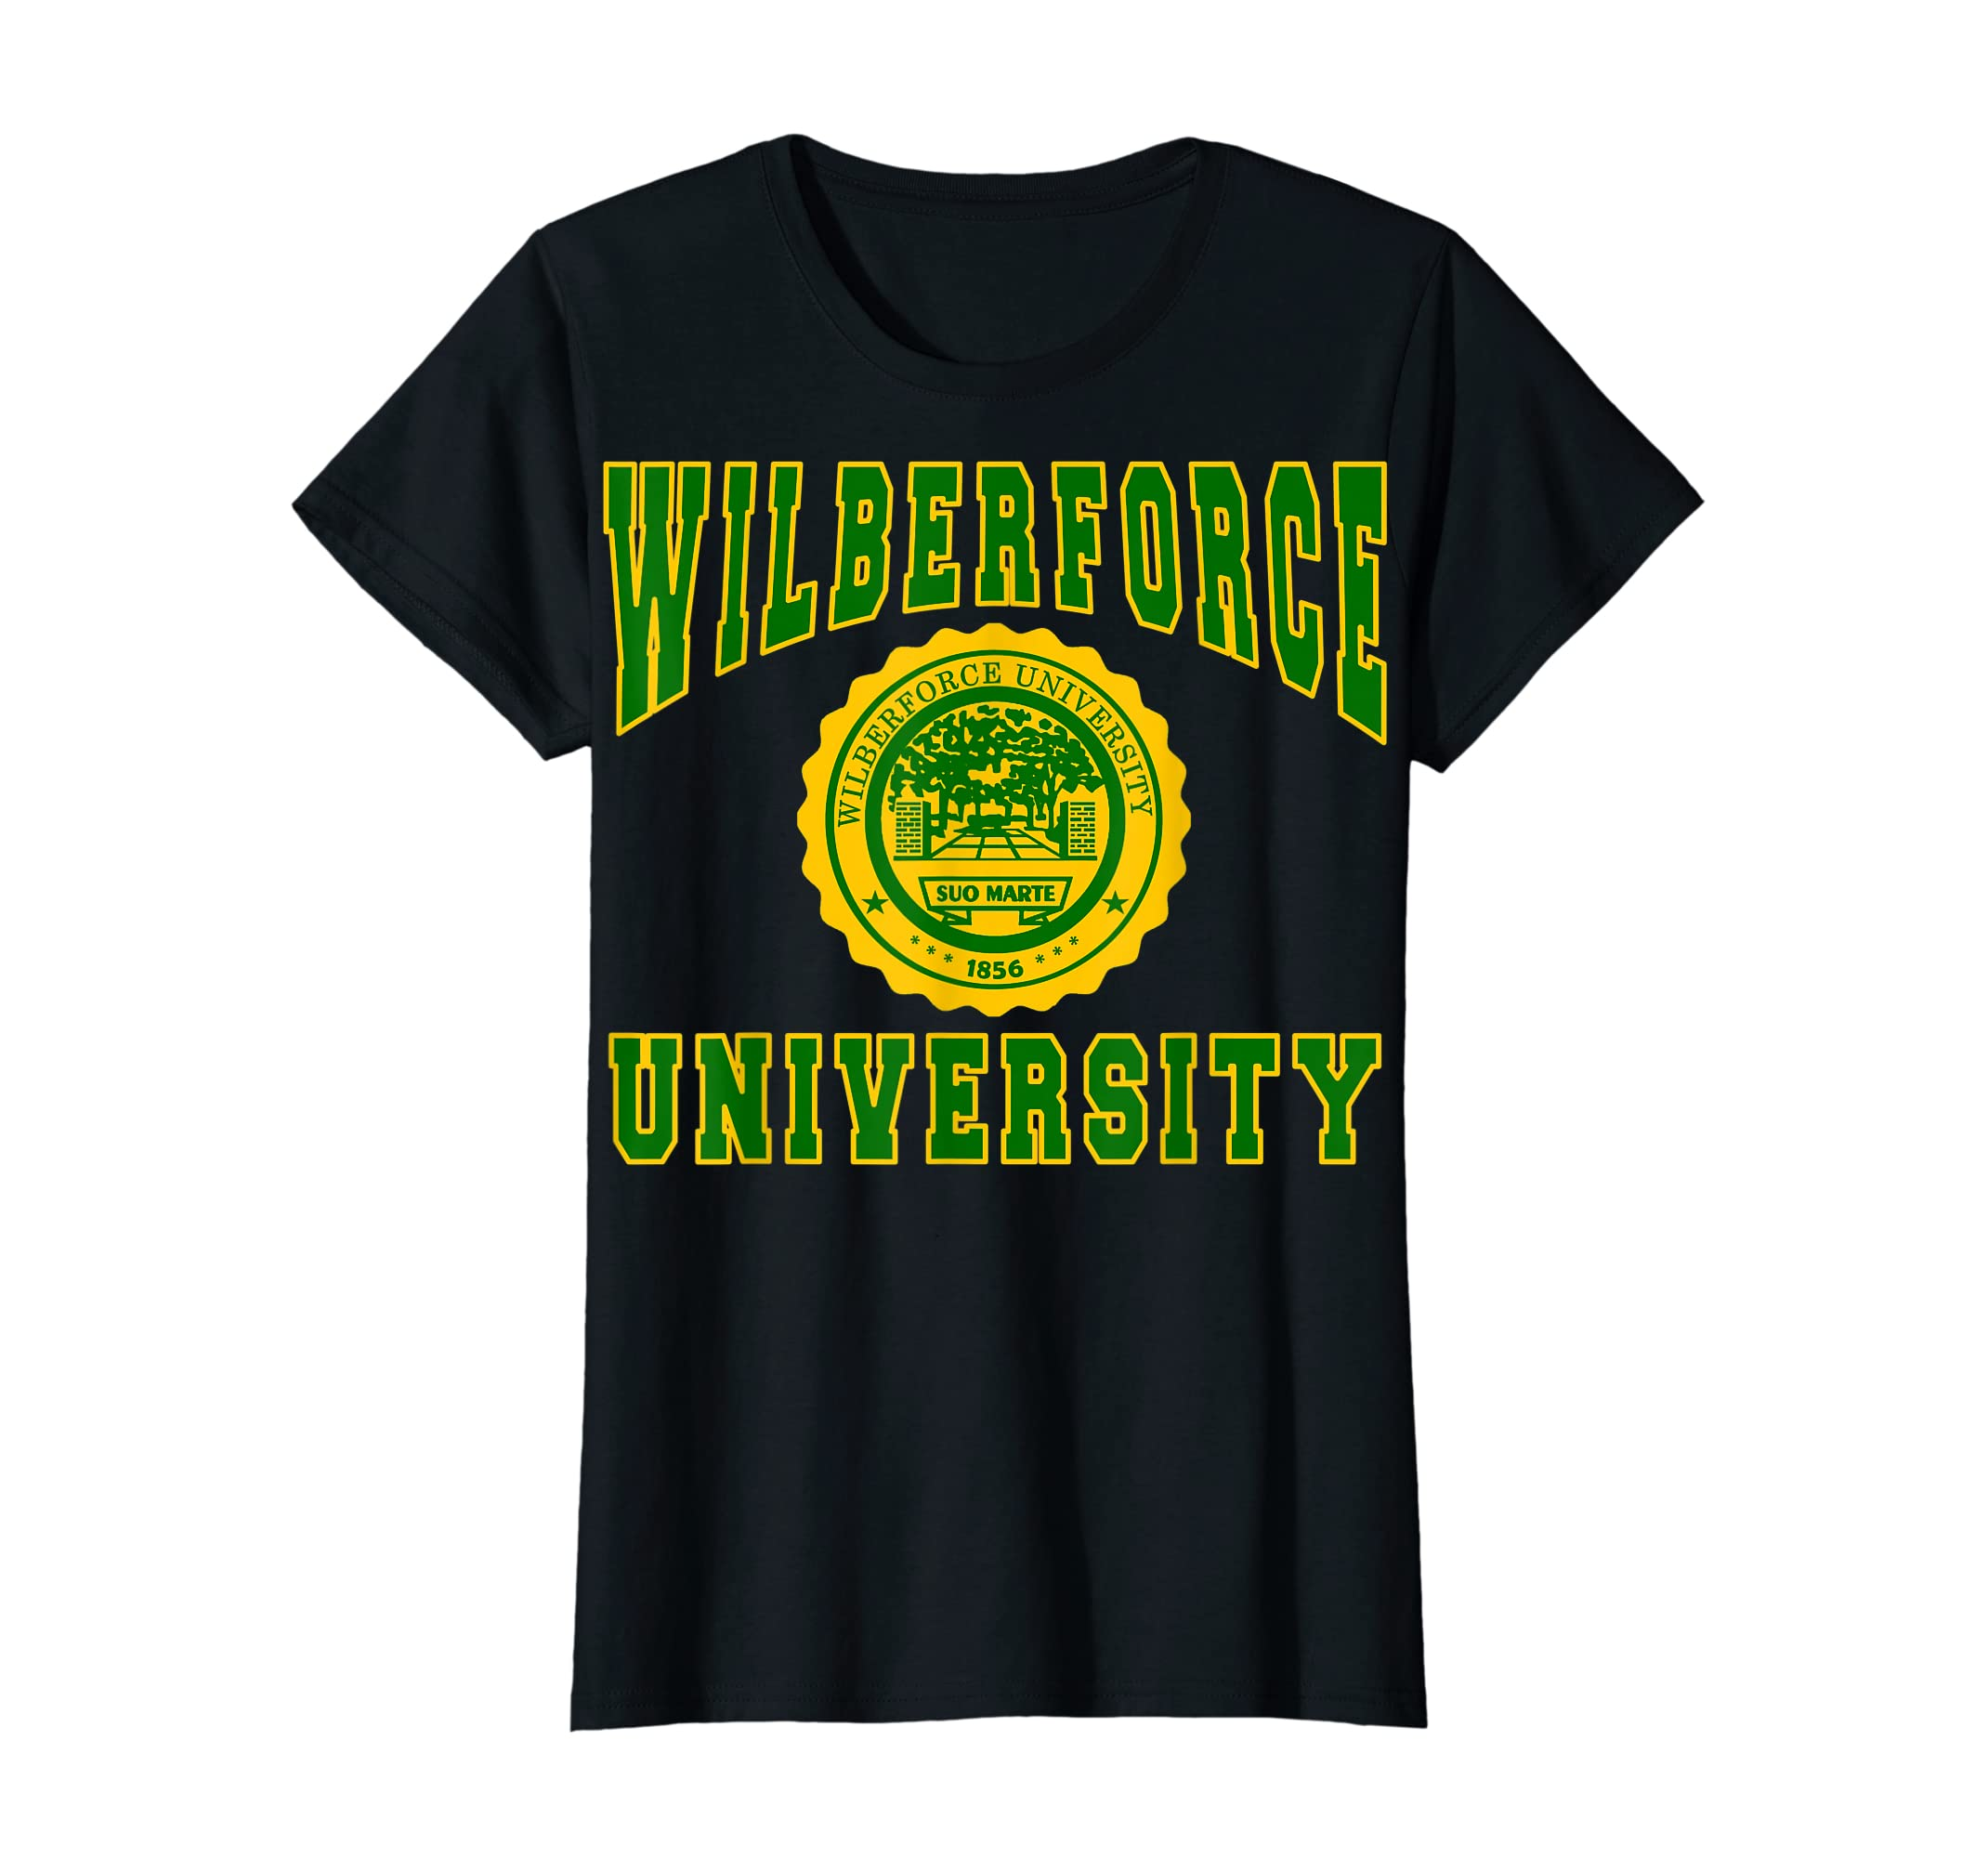 Wilberforce 1856 University Apparel - T shirt-Women's T-Shirt-Black